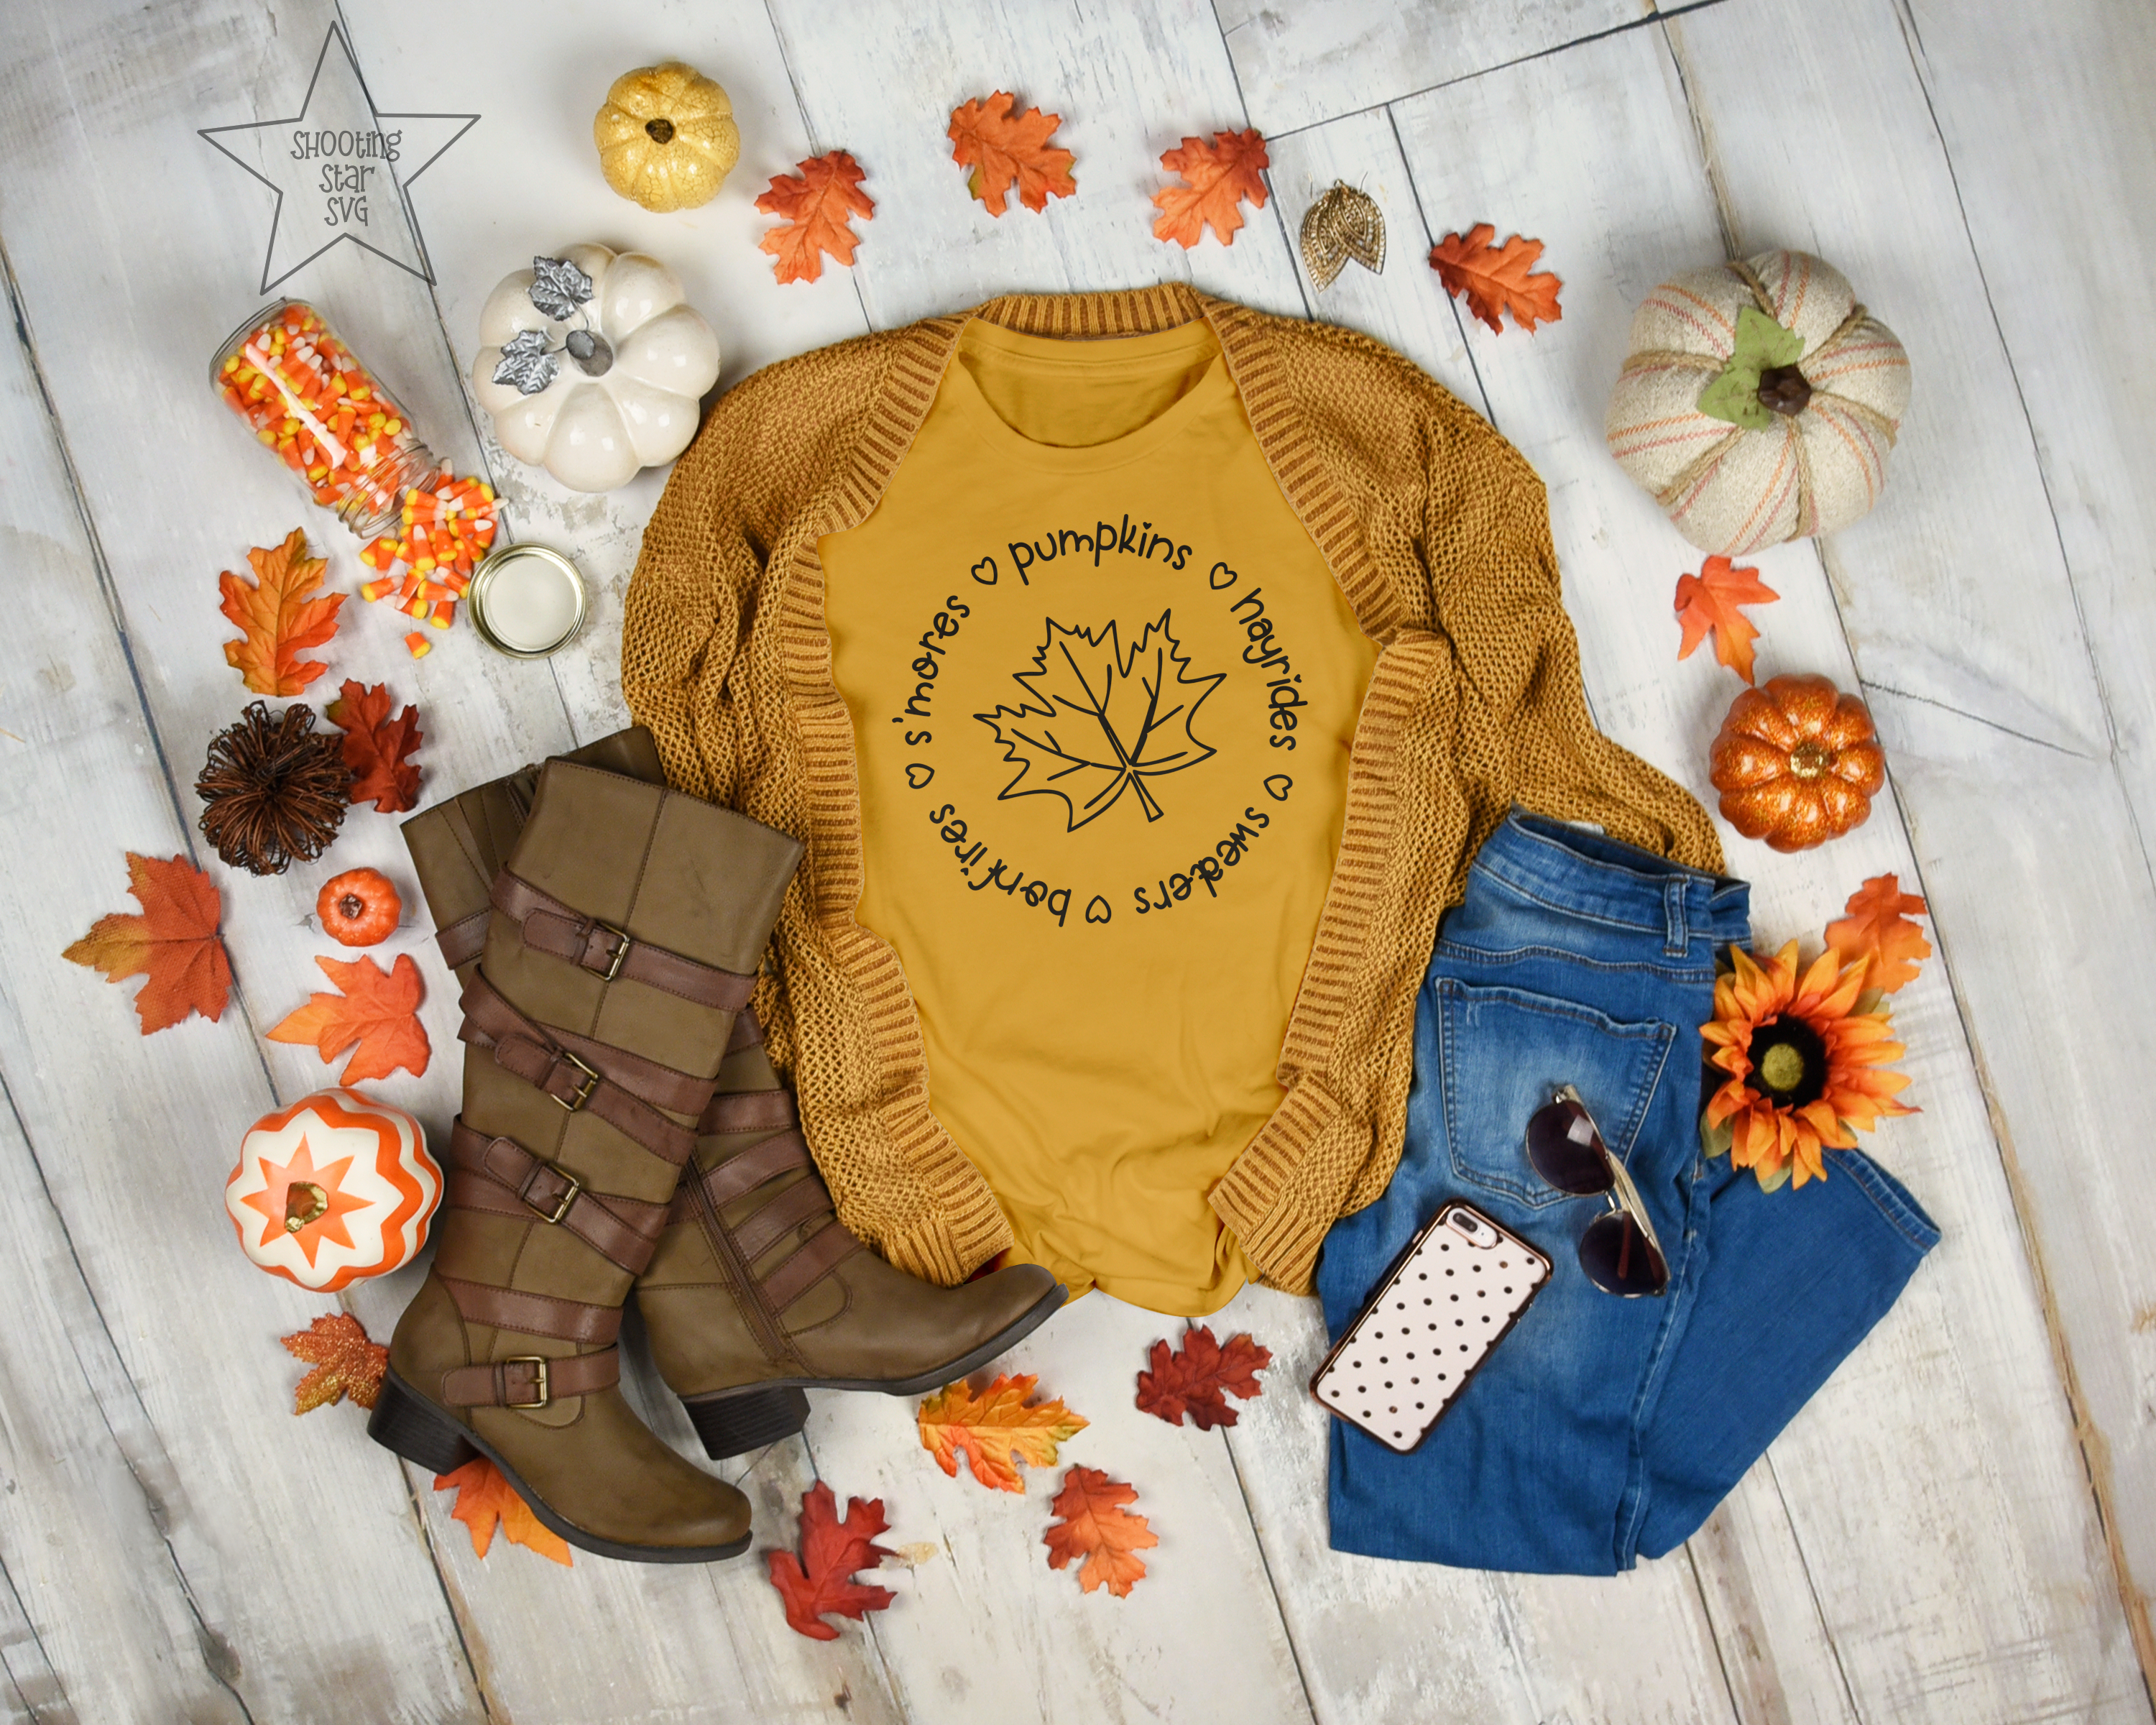 S'mores Hayrides Pumpkins Bonfires Sweaters - Fall SVG example image 2